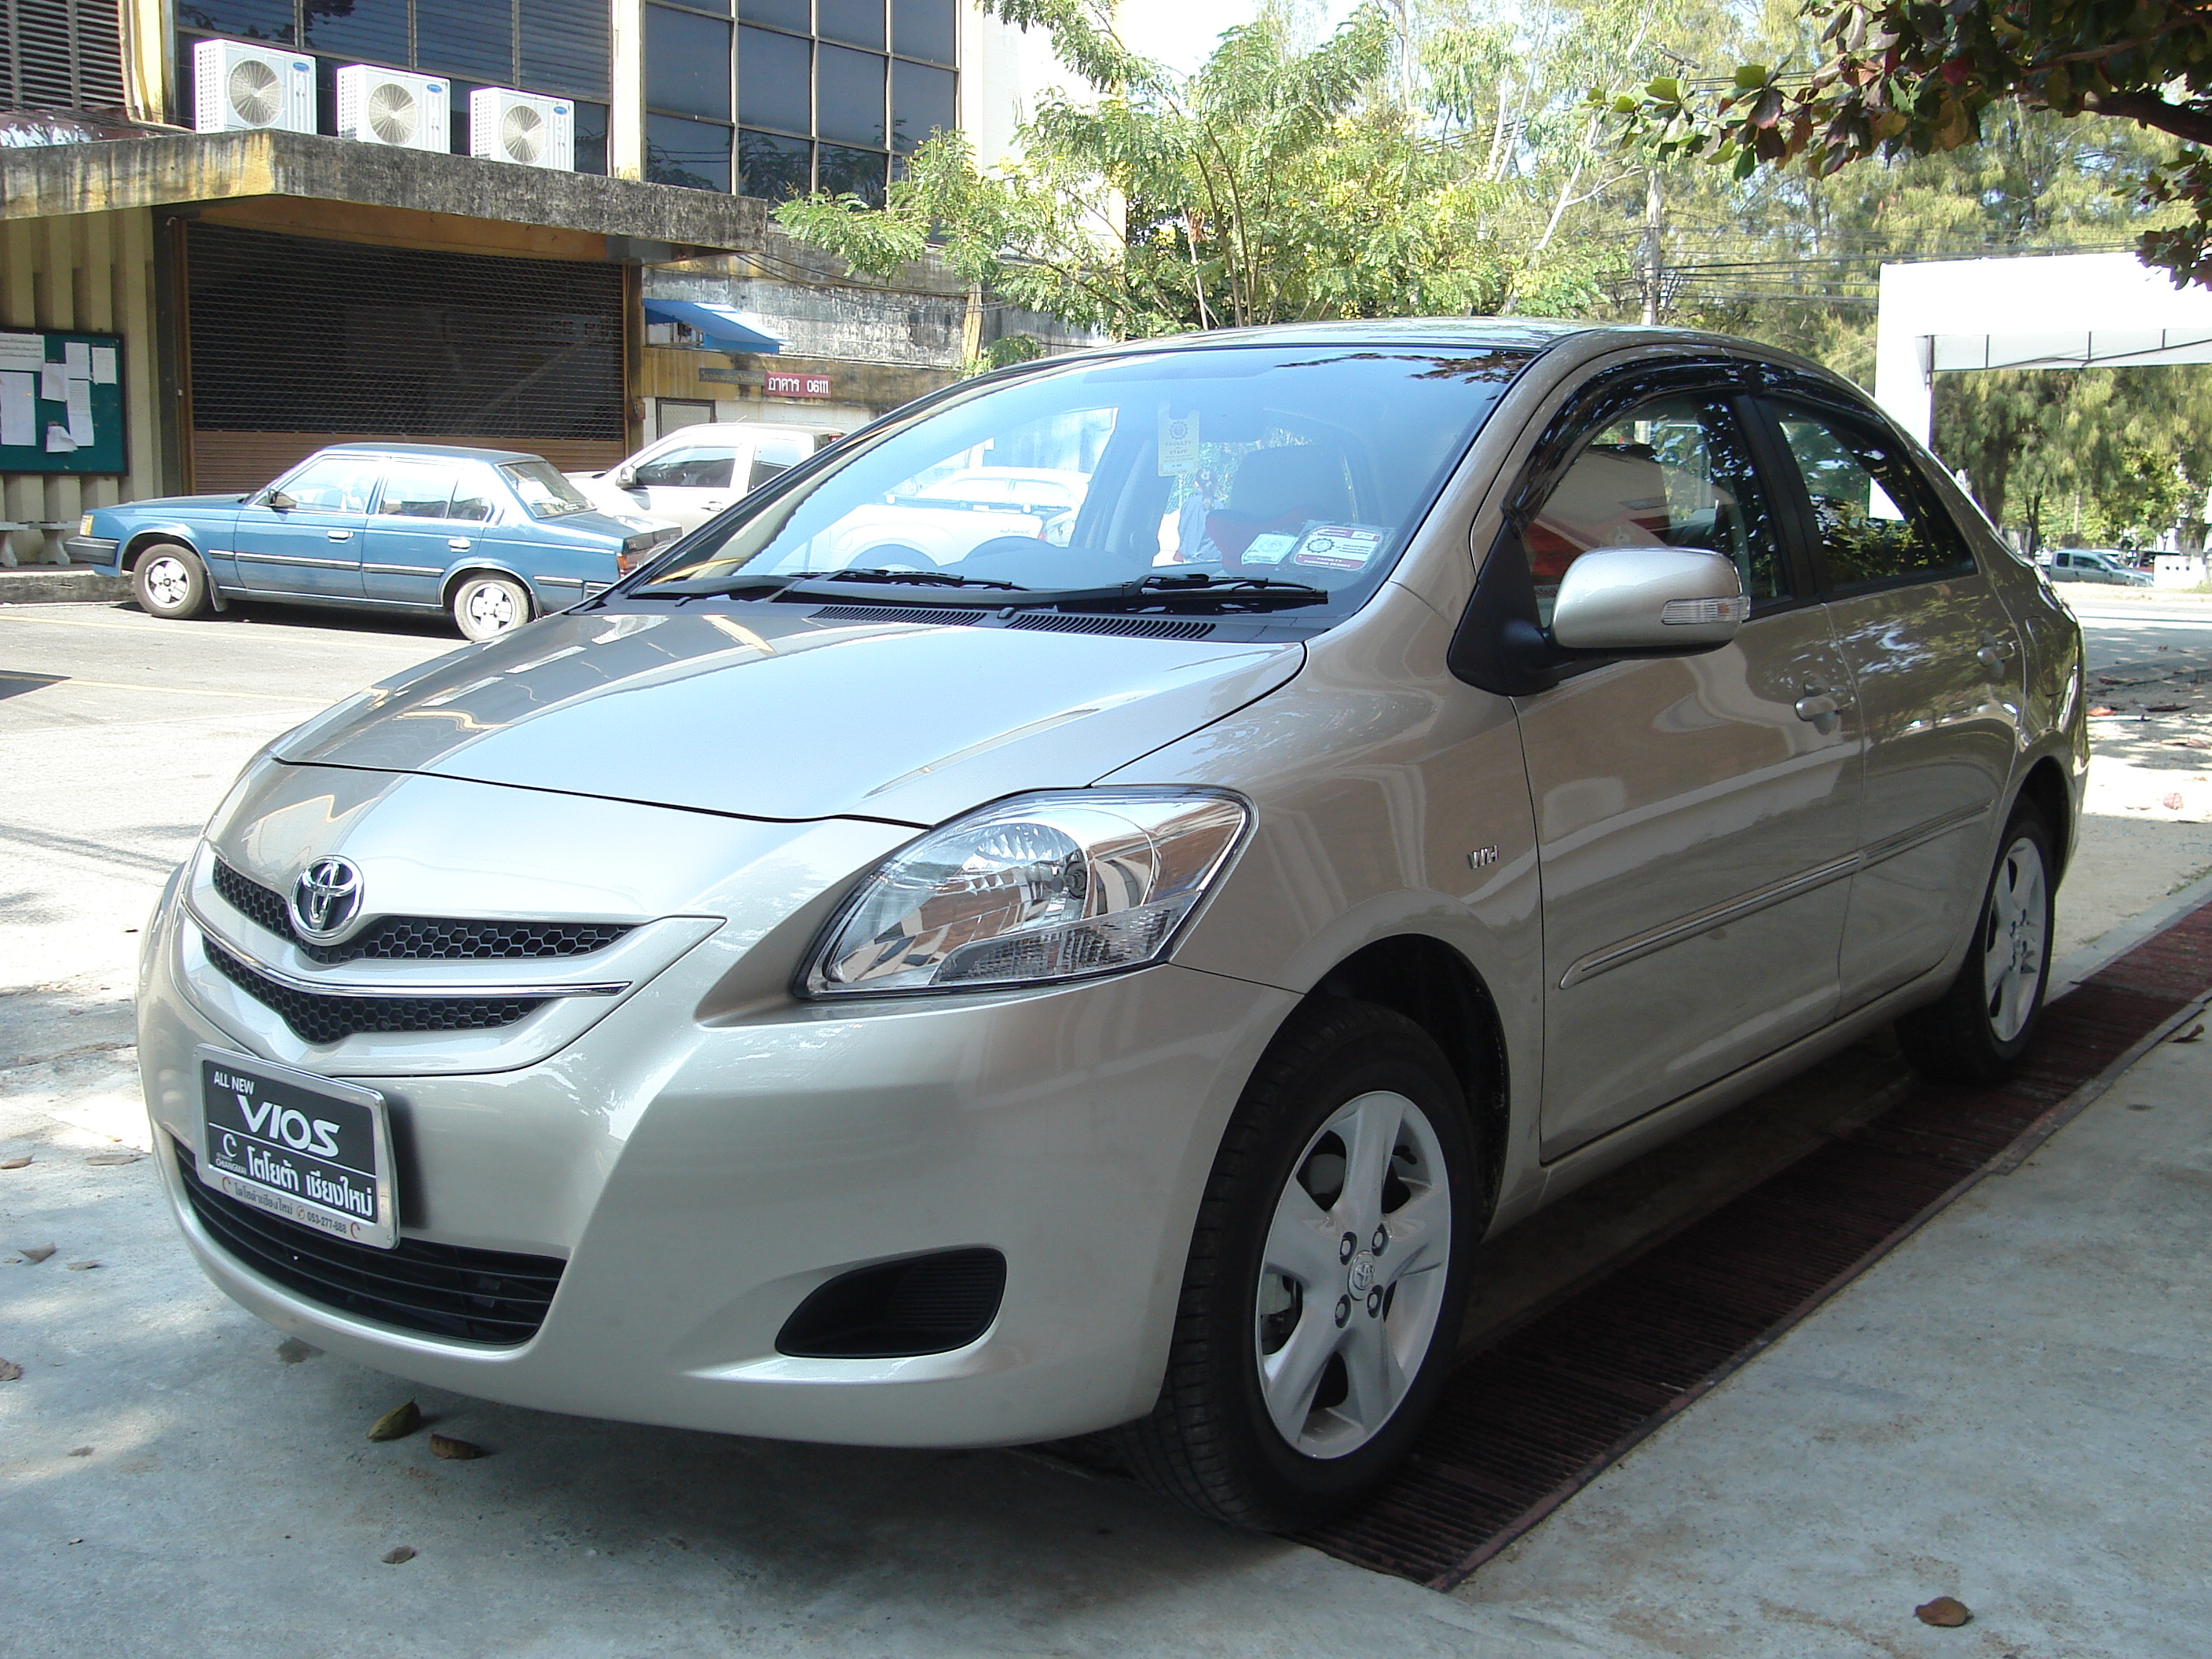 Toyota vios 2008 photo - 1